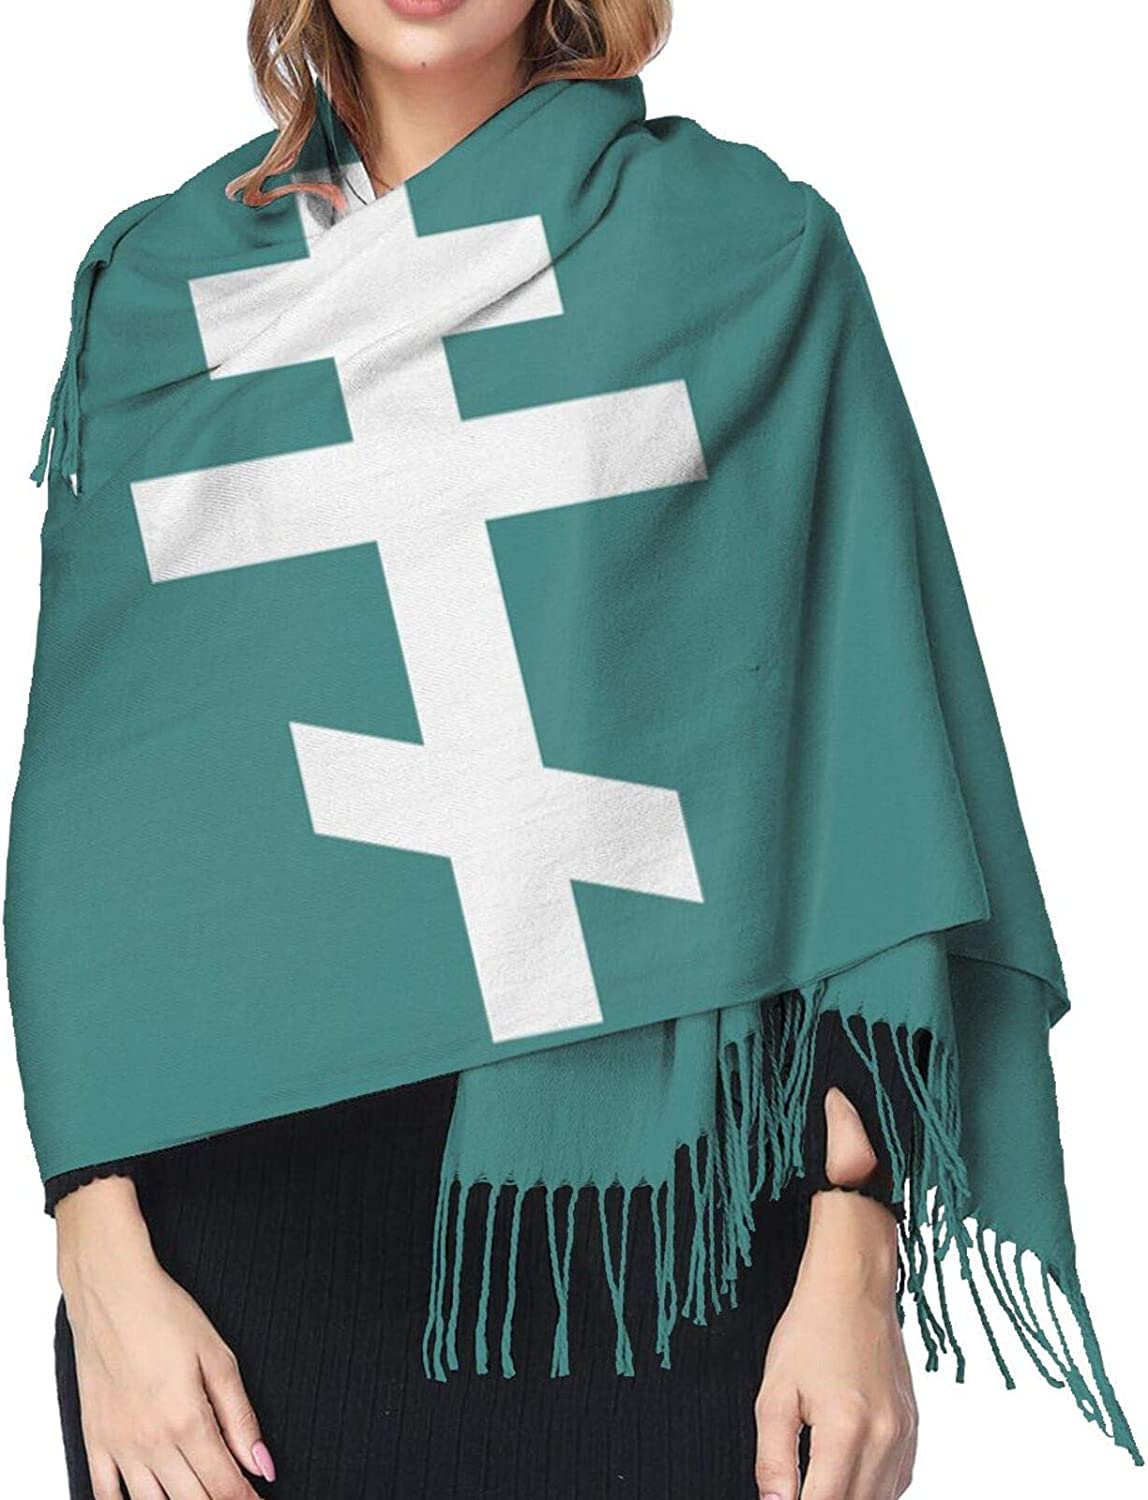 Eastern Orthodox Cross Cashmere Scarf Fashion Long Shawl with Fringed Edges Super Soft Warm Cozy Light Blanket Scarves Wrap Ultra Warm Winter Accessories Gifts For Men And Women